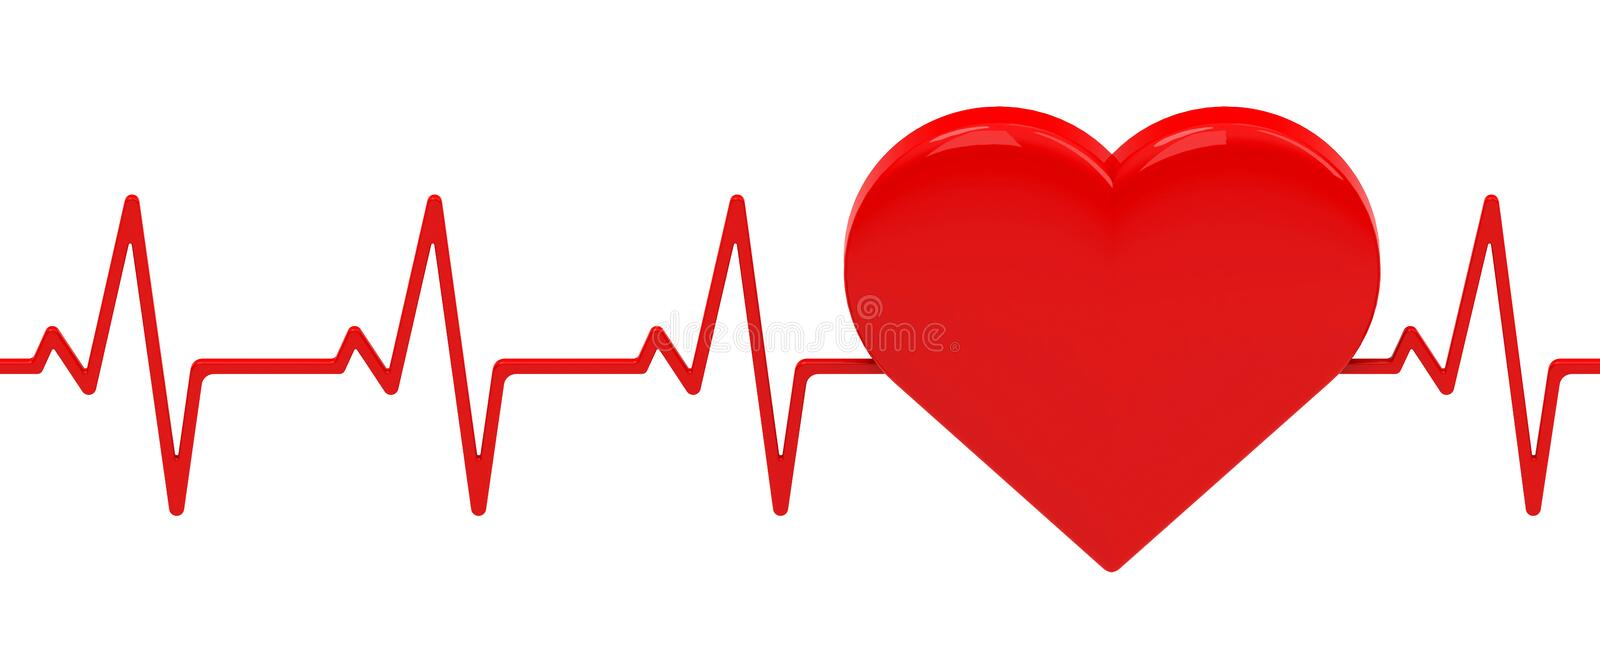 The heartbeat. 3d generated picture of a red heart with heartbeat royalty free illustration